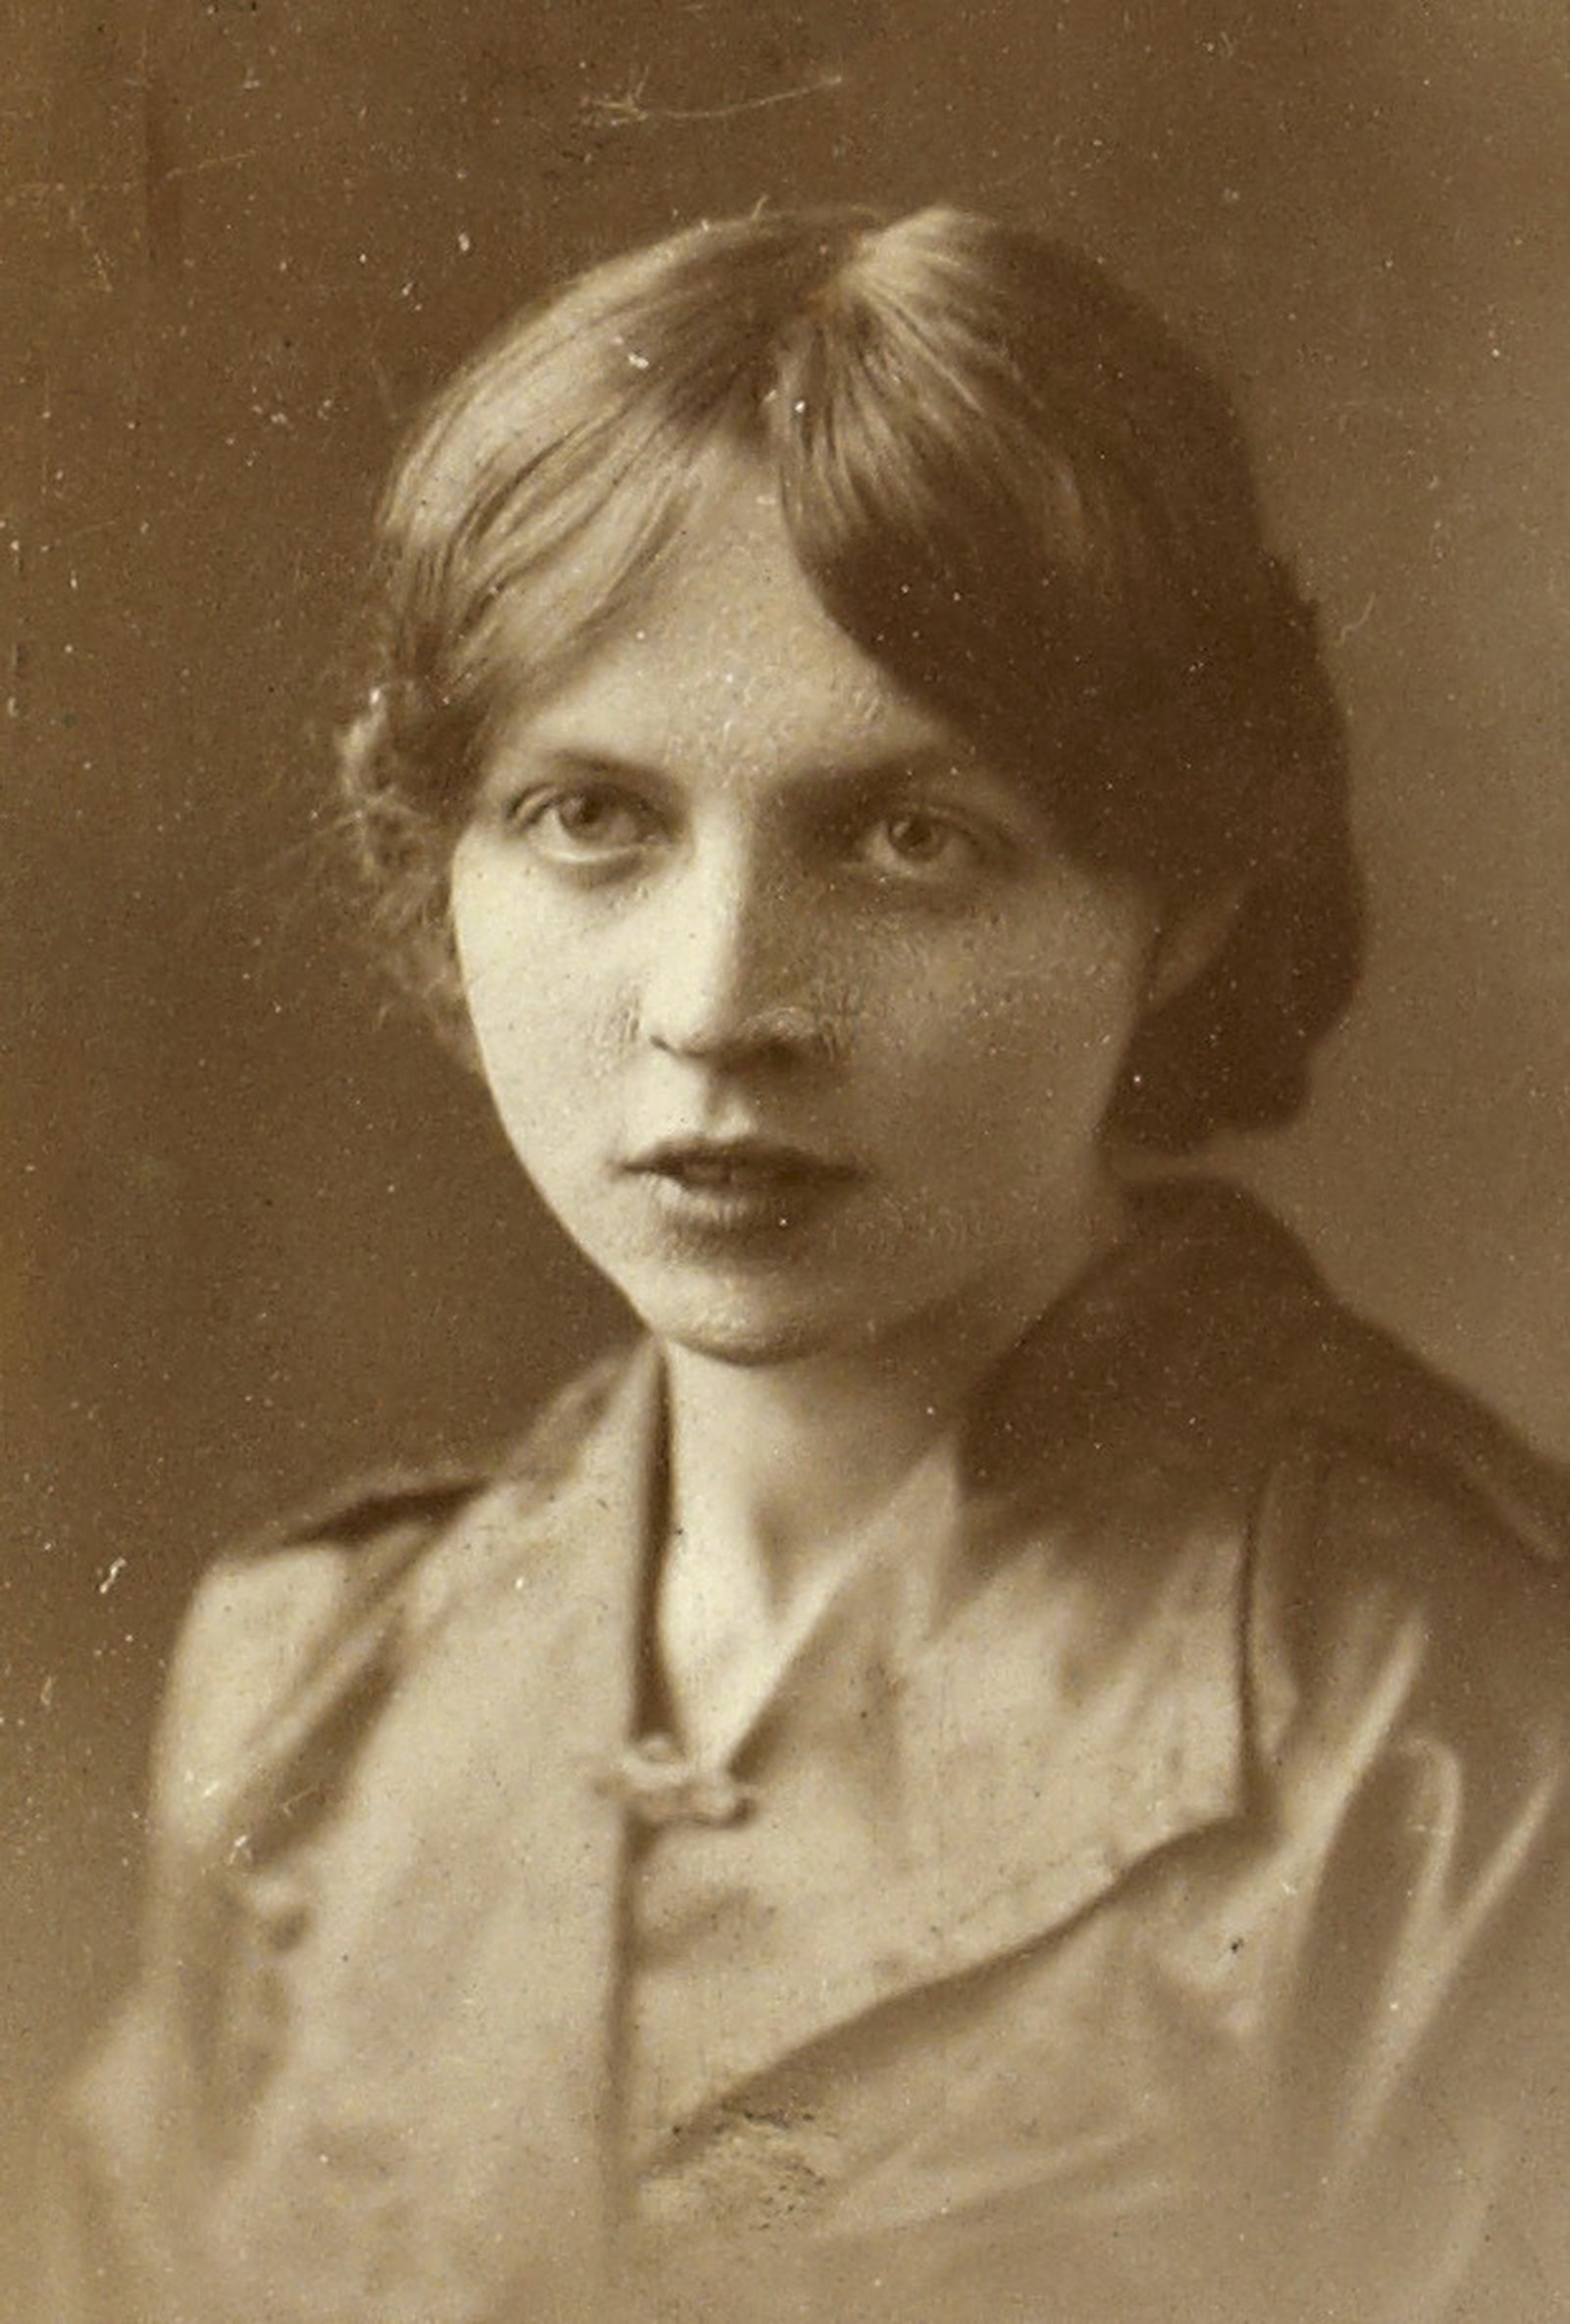 Image - Unknown girl wearing her Cumann na mBan pin. Image courtesy of the National Library of Ireland